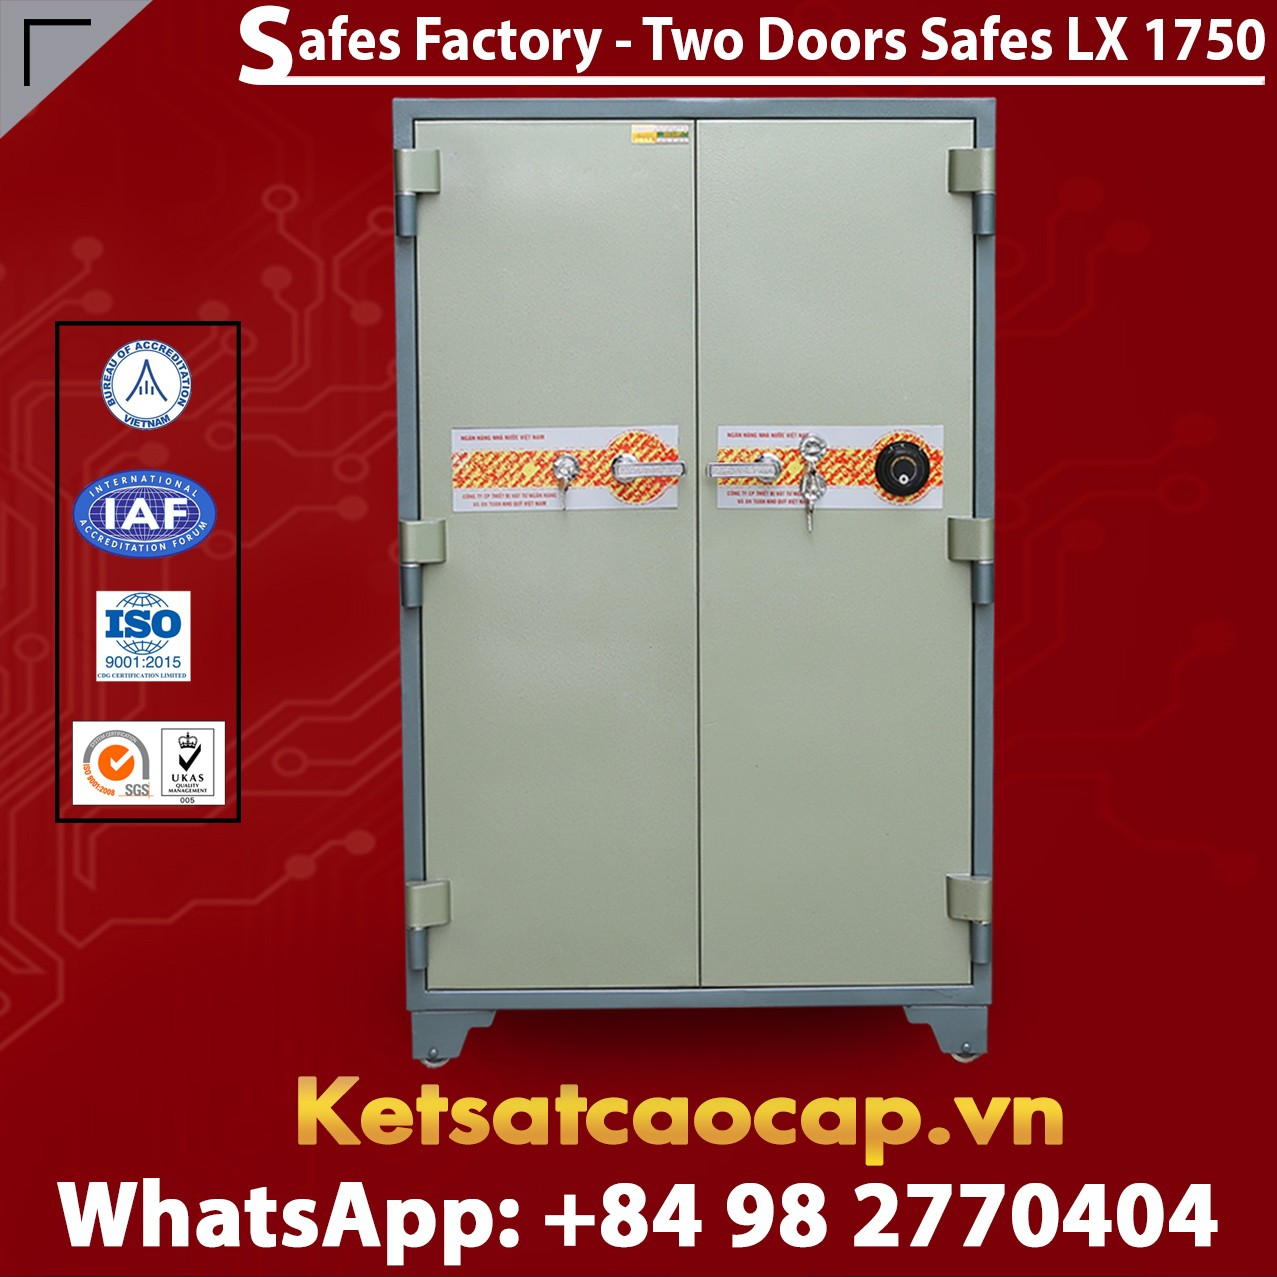 Bank Safe LX1750 DK Two Doors Mordern Design Security For Large Bank